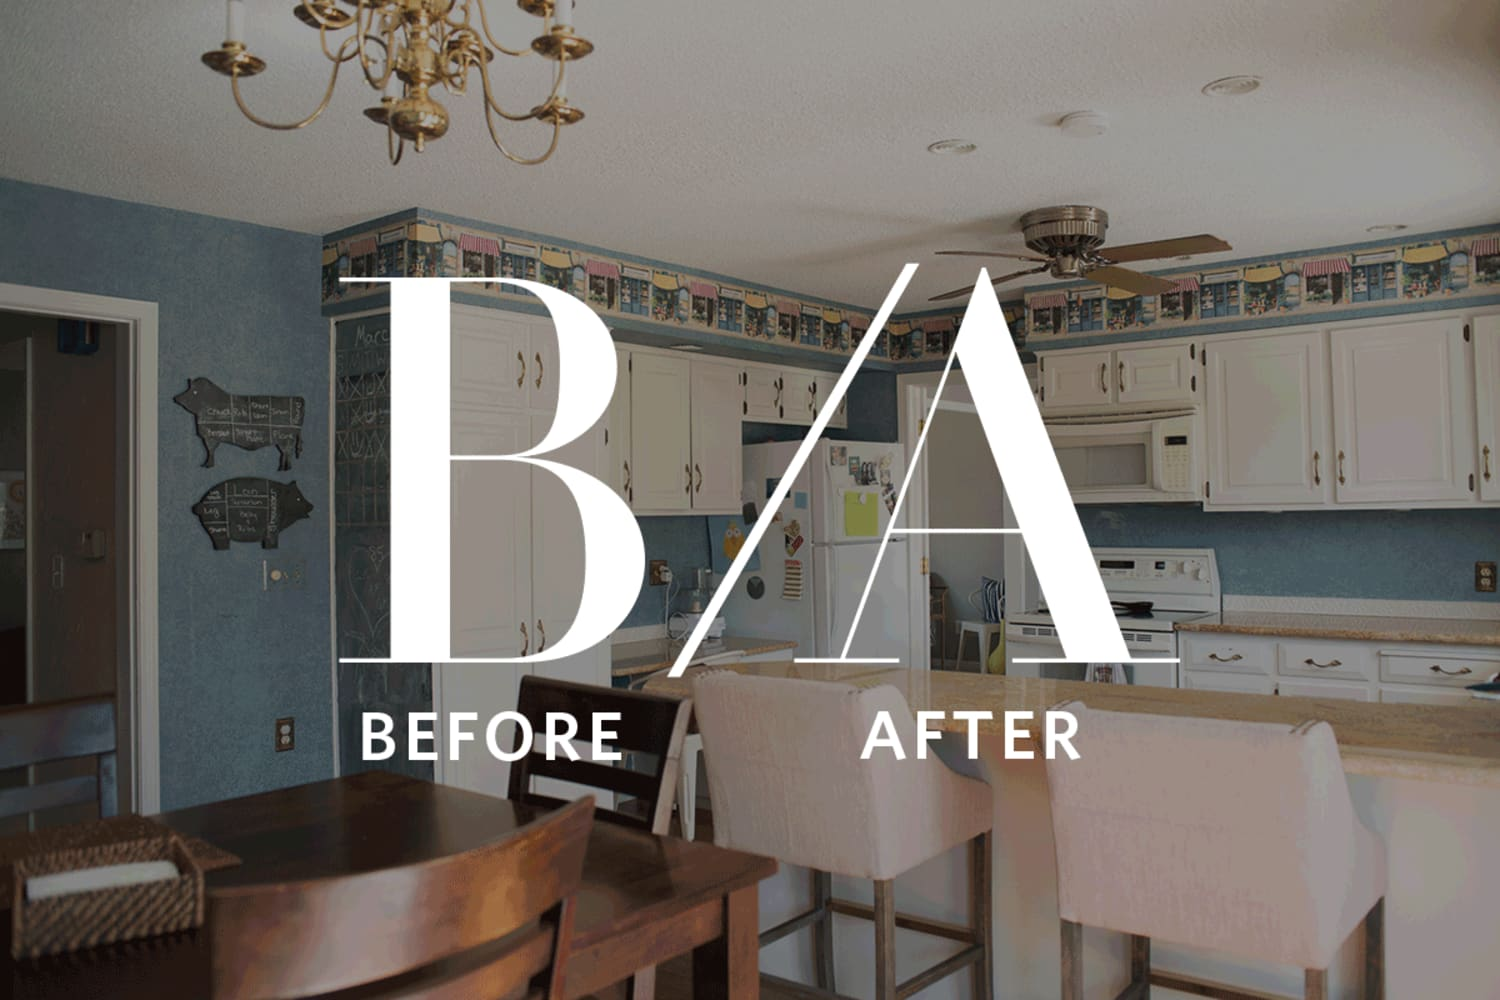 Before & After: A Stunning DIY Kitchen Update for 15k